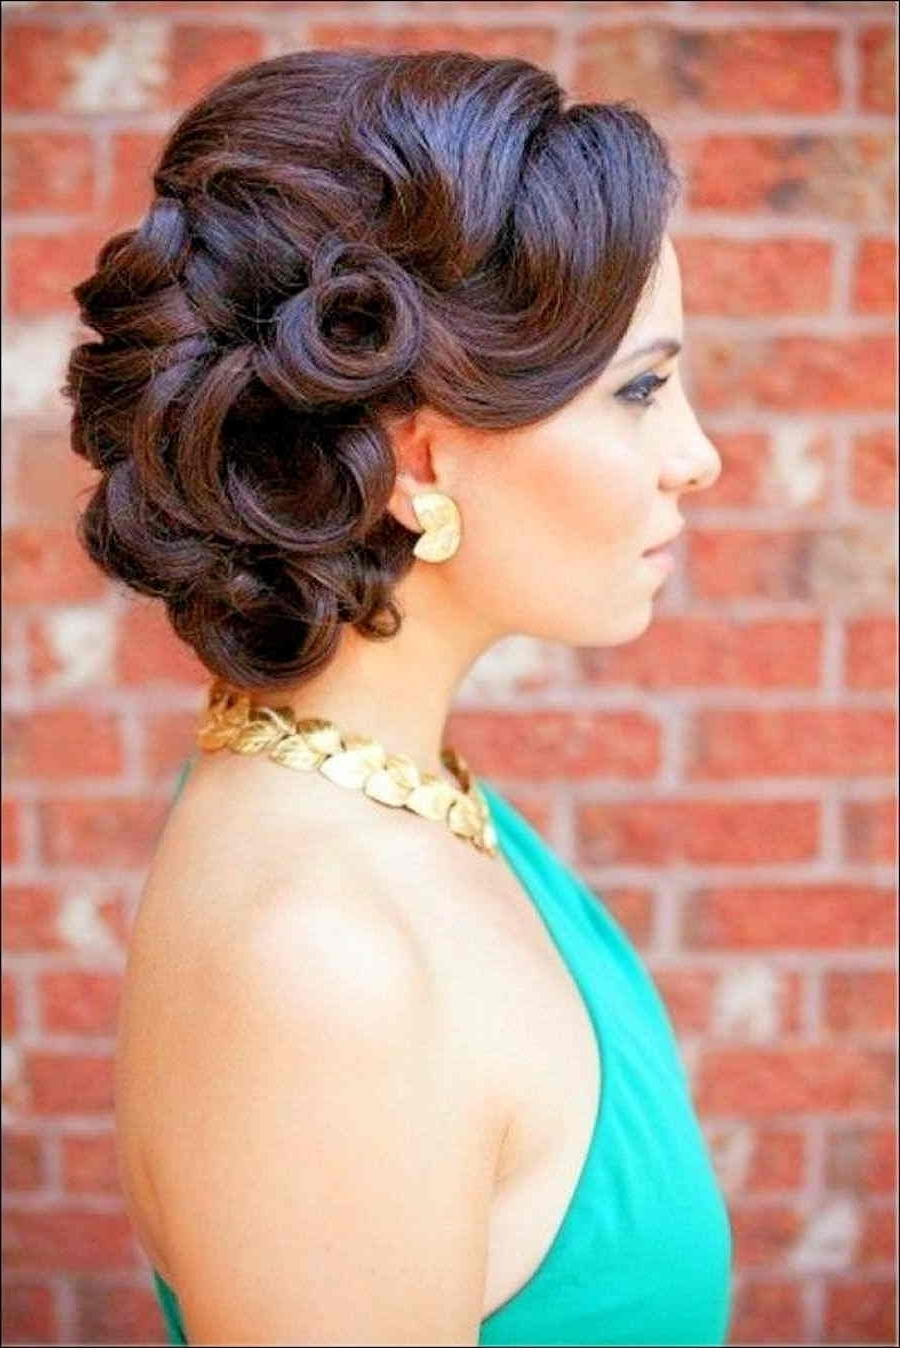 Natural Hairstyles For Older Women | Hairstyle Ideas In 2018 In Updo Hairstyles For Older Women (View 15 of 15)